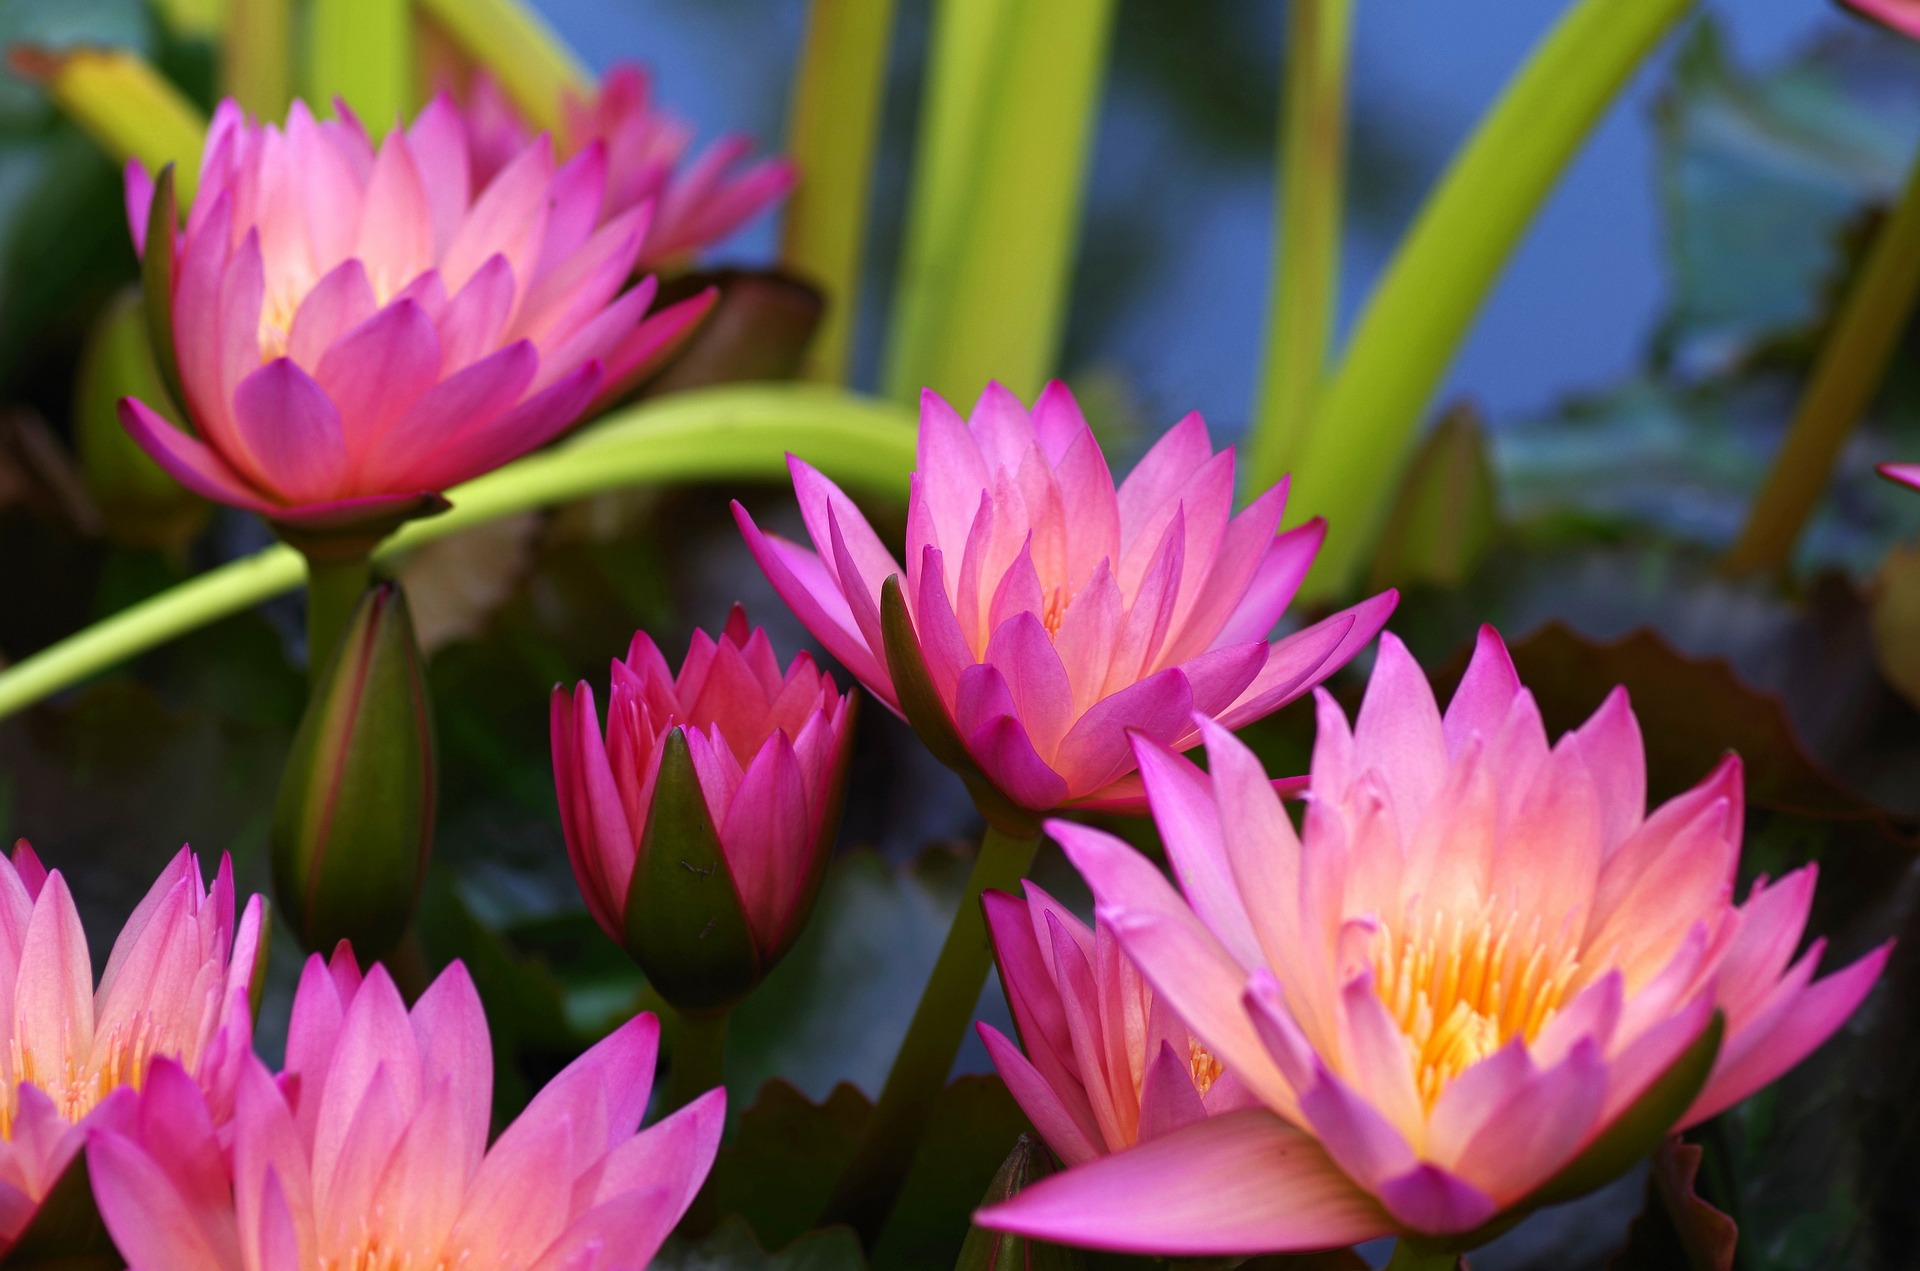 integrative mental health acupuncture stress relief water lilies